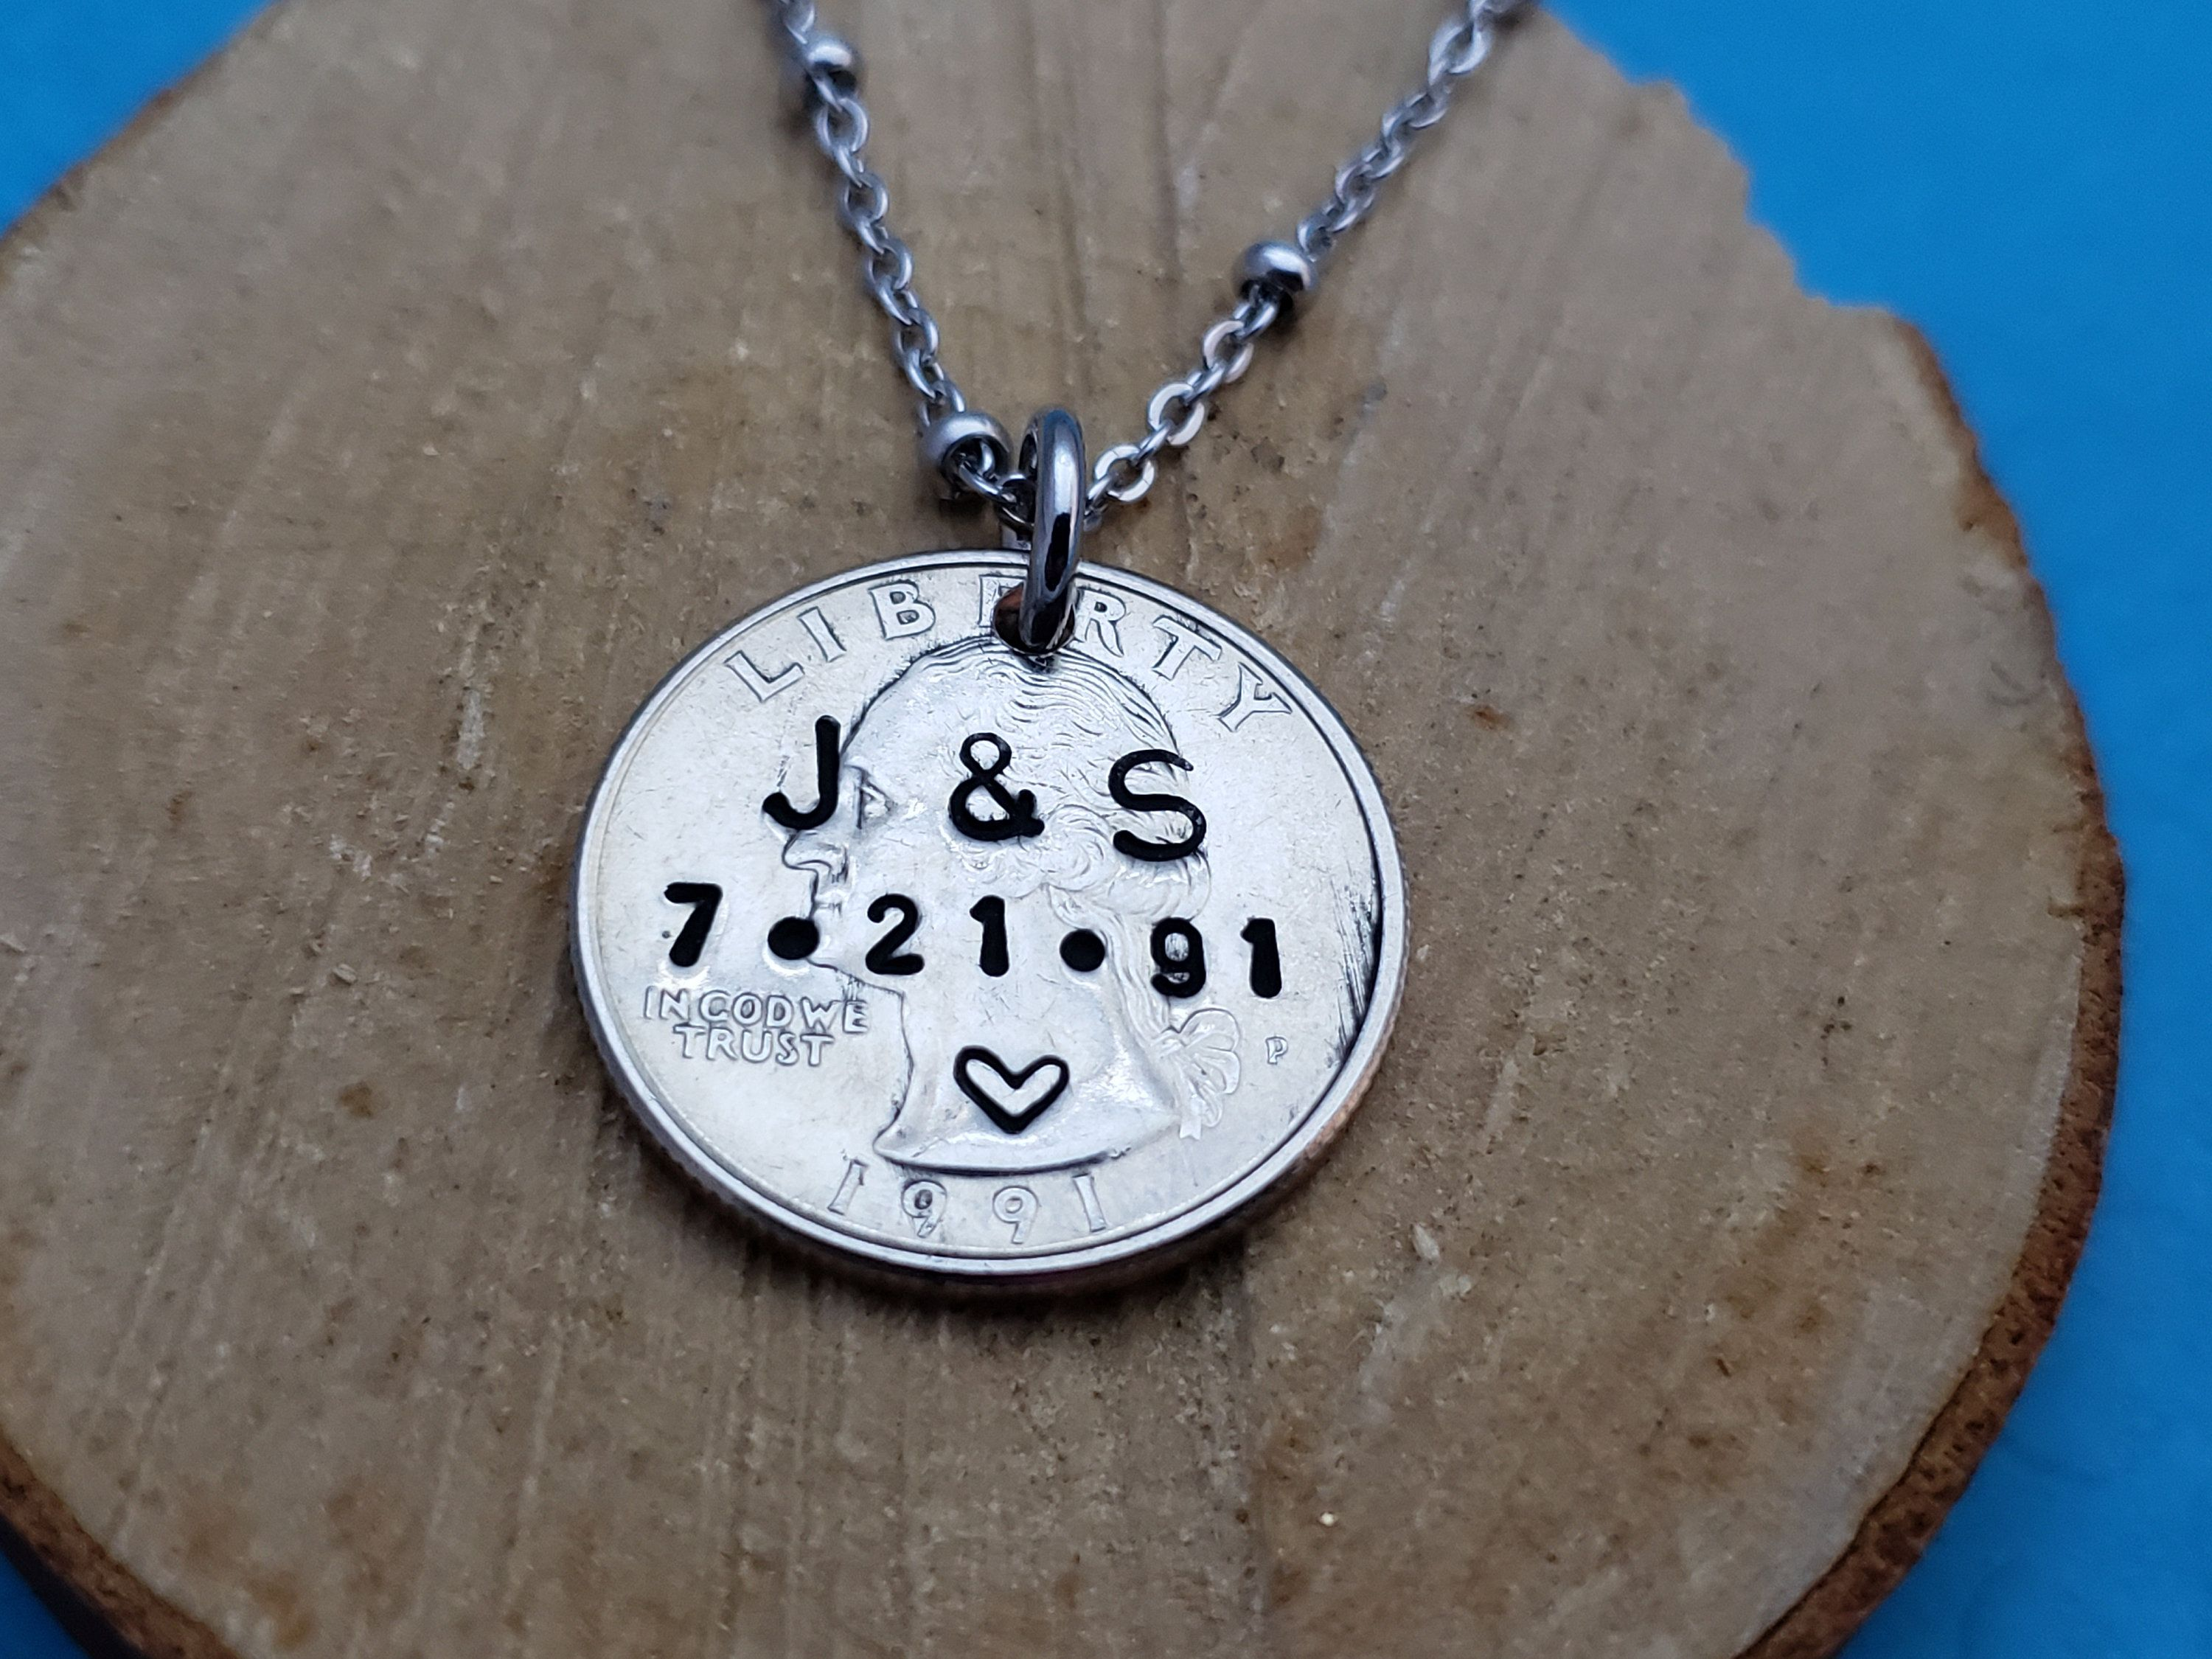 25 year anniversary necklace gift us quarter jewelry